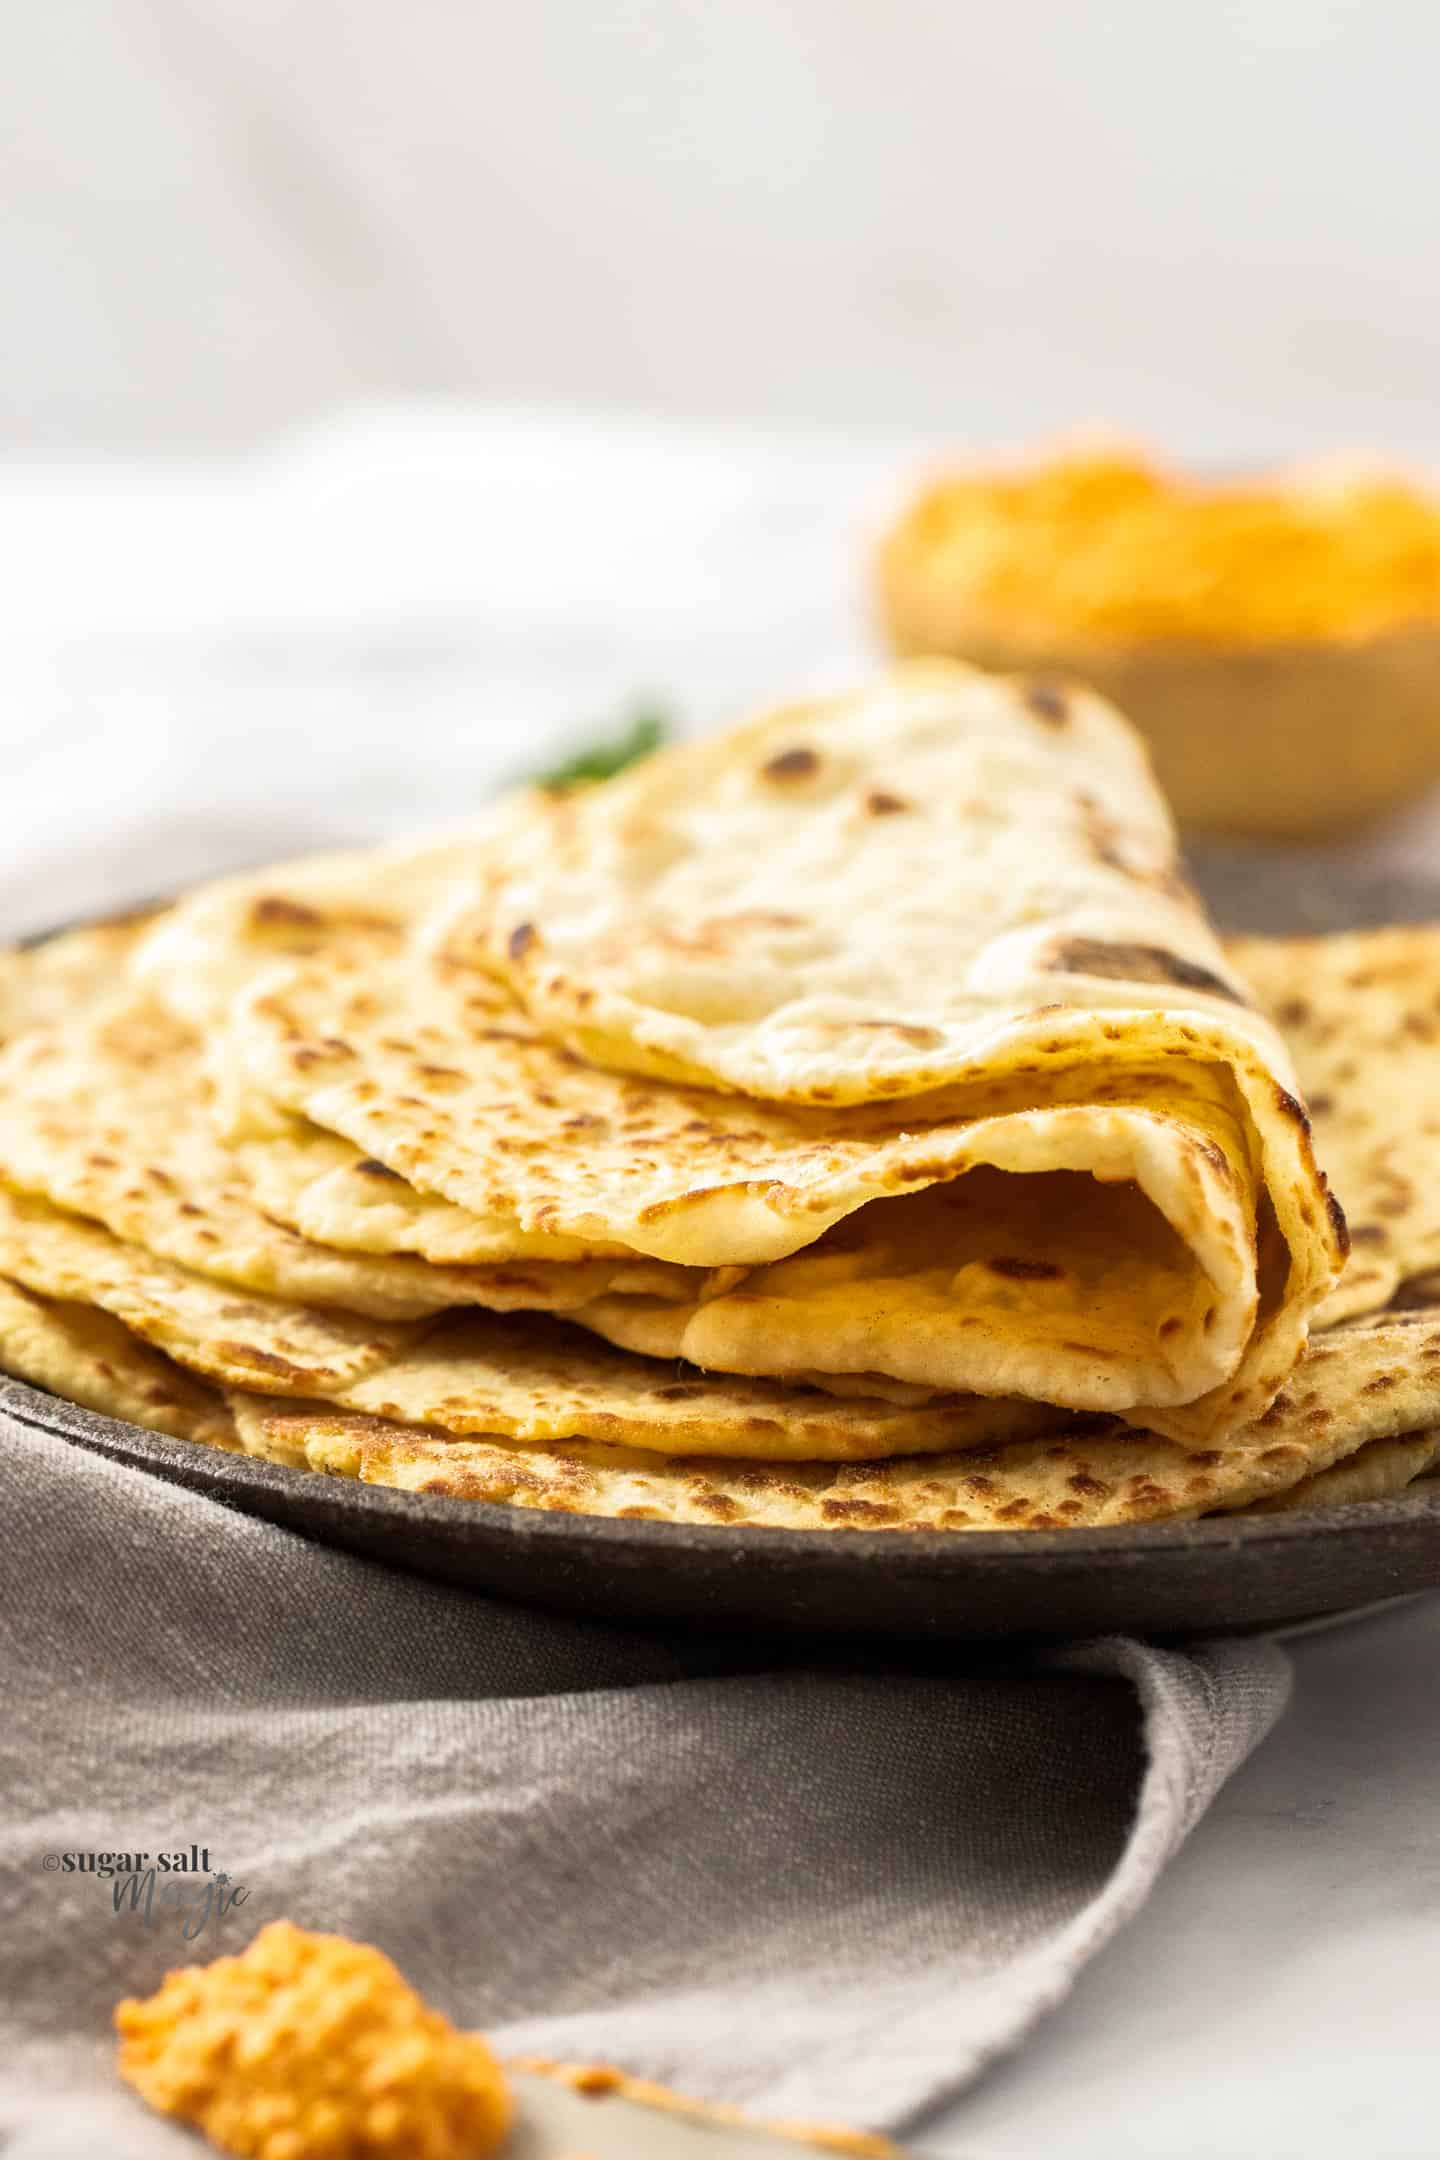 Some flatbreads folded on a brown plate.